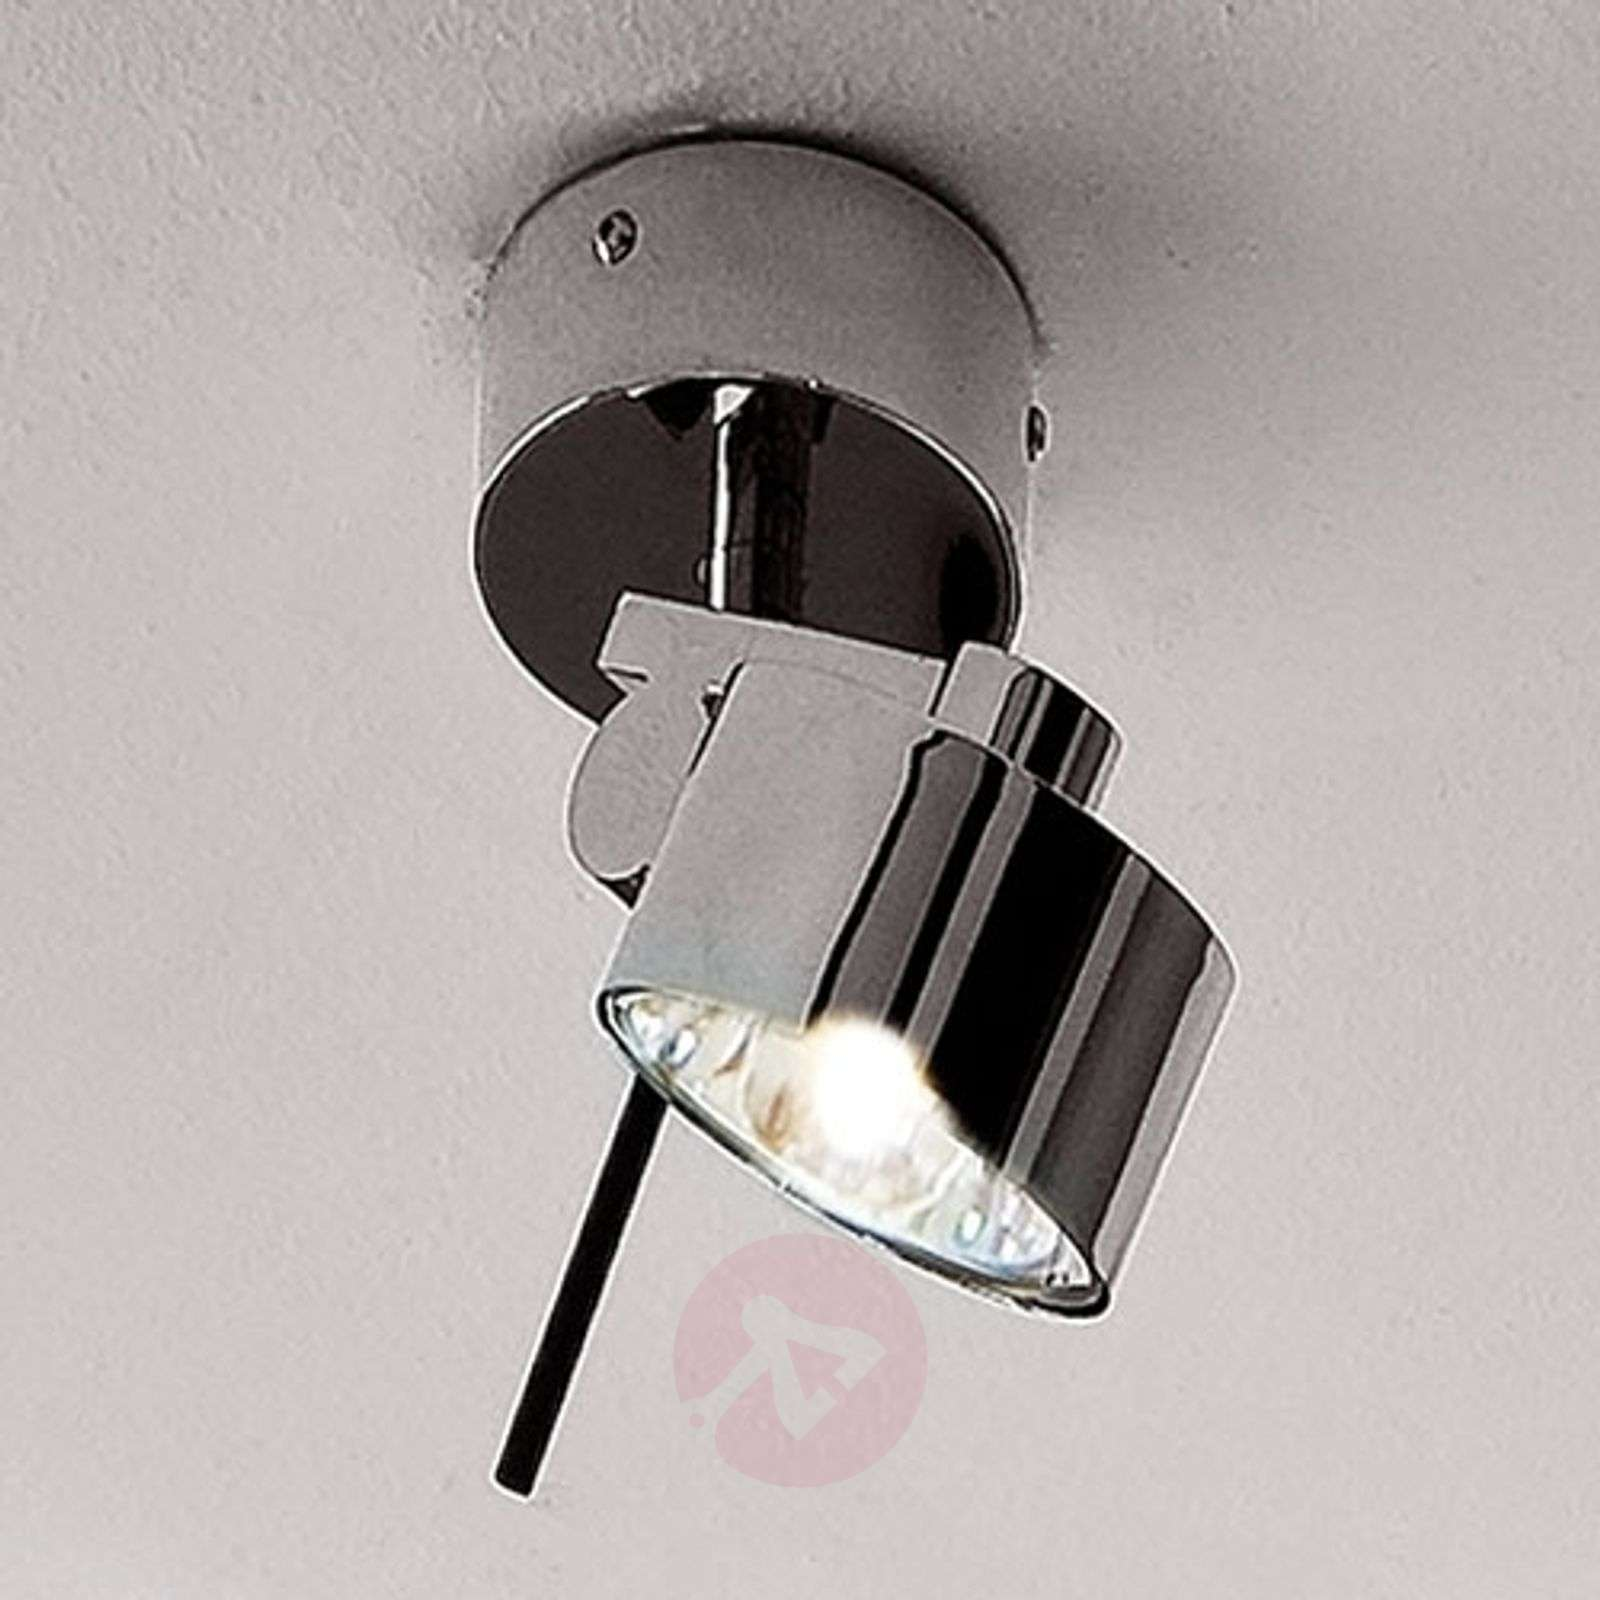 Chrome-plated wall and ceiling spotlight AX20-1088037-01